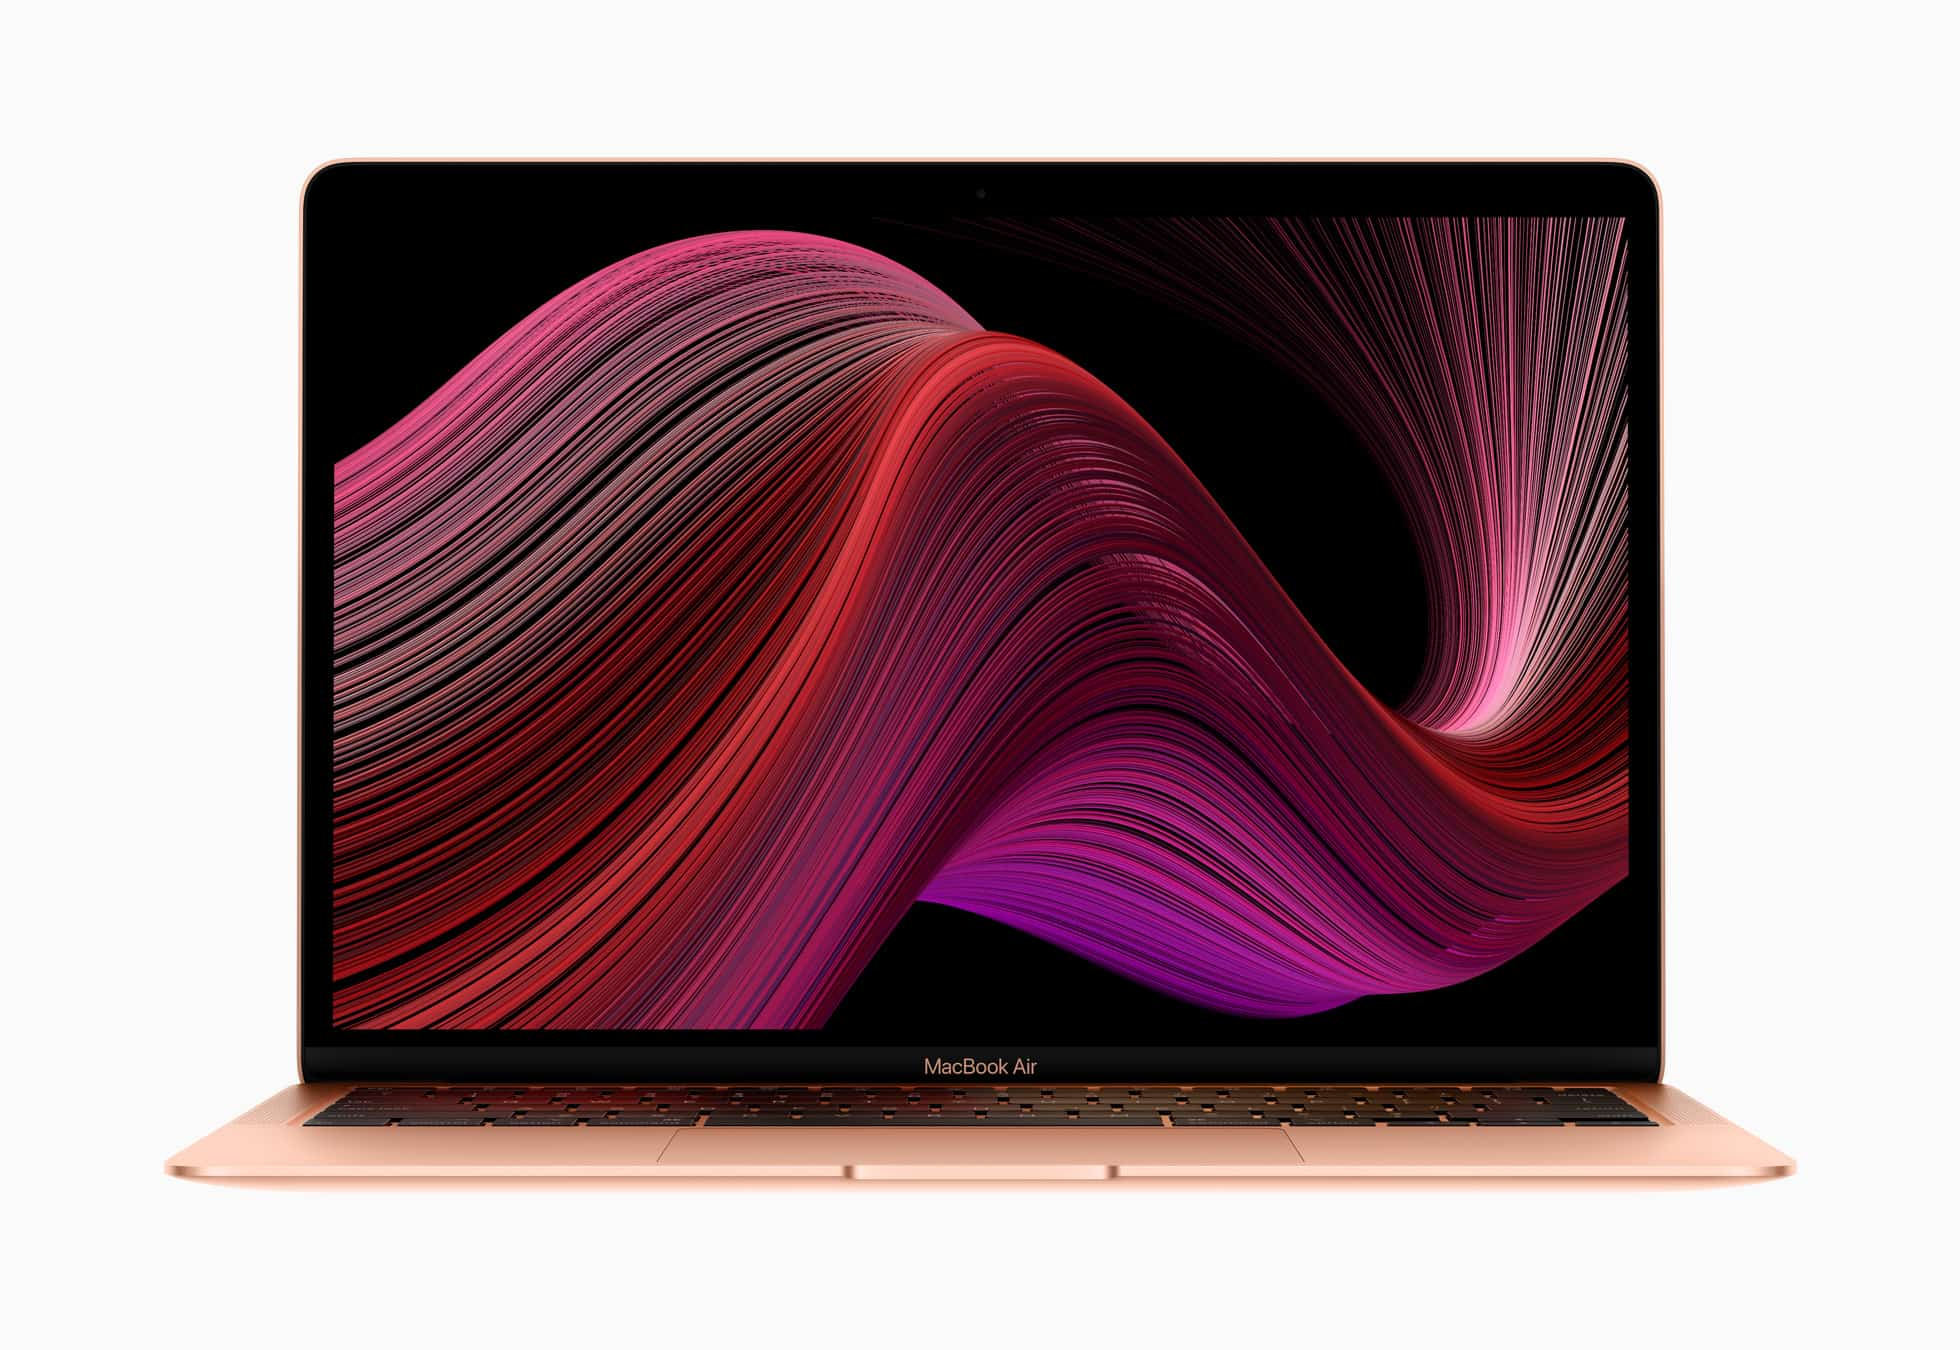 Màn hình MacBook Air 2020 - laptopvang.com